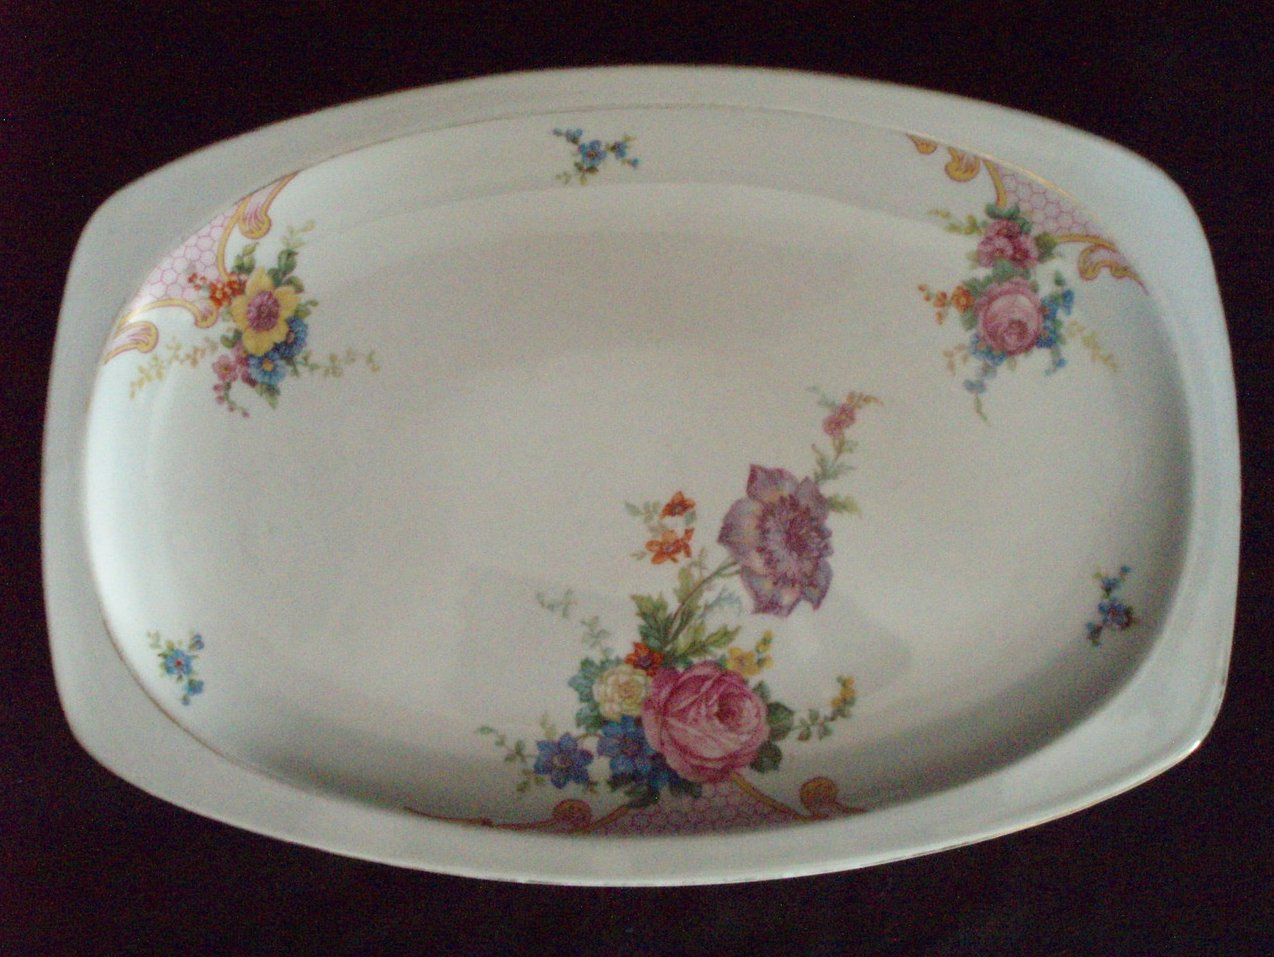 Epiag Czechoslovakia china Bridal Rose serving Platter VTG